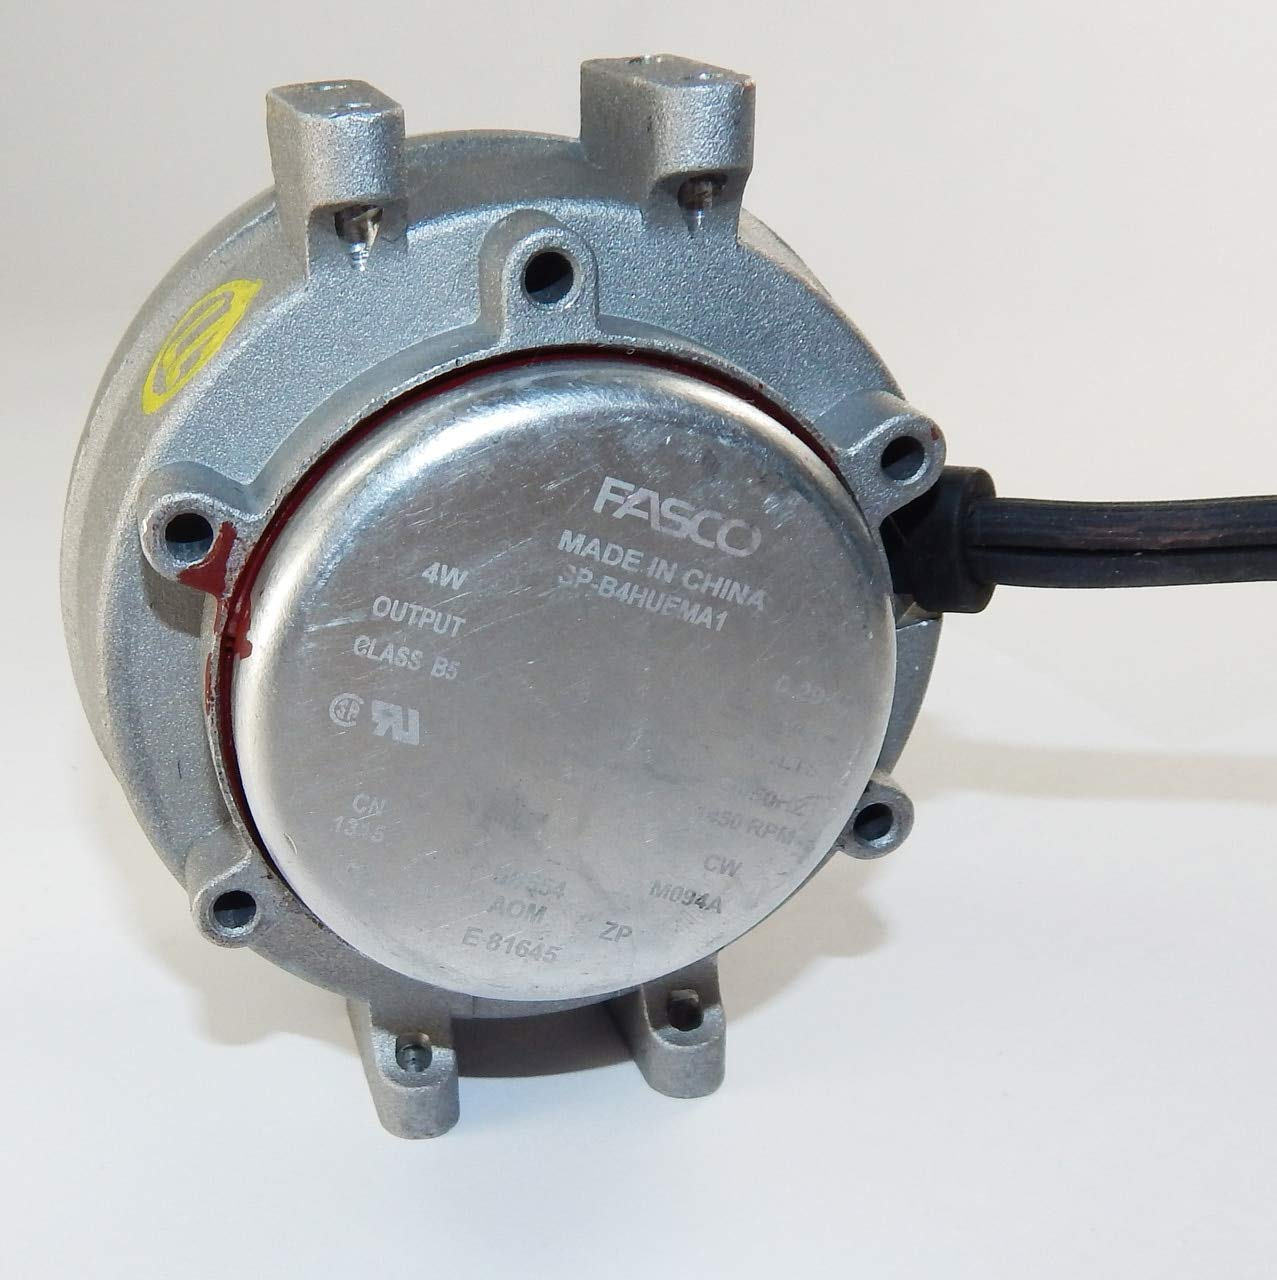 4 Watt 1450 RPM CWLE 115V Unit Bearing Refrigeration Fasco Electric Motor # UB554-F